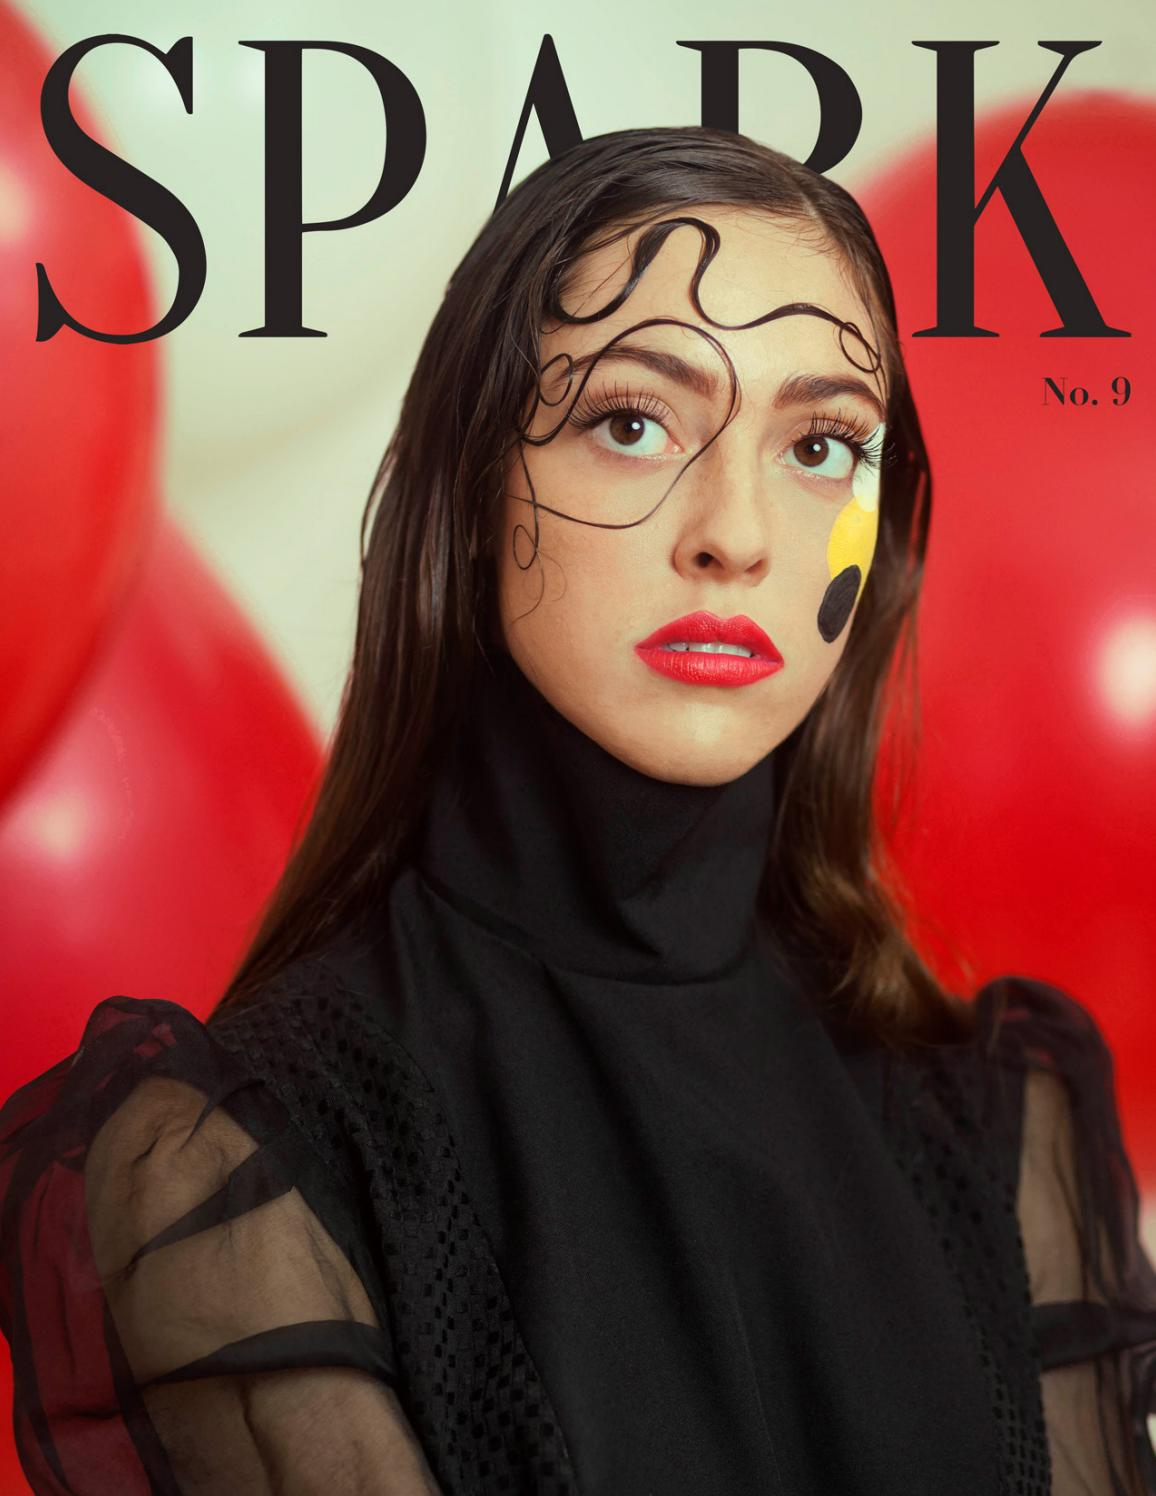 e183aa614ed3 Spark Magazine No. 9 by Spark Magazine - issuu